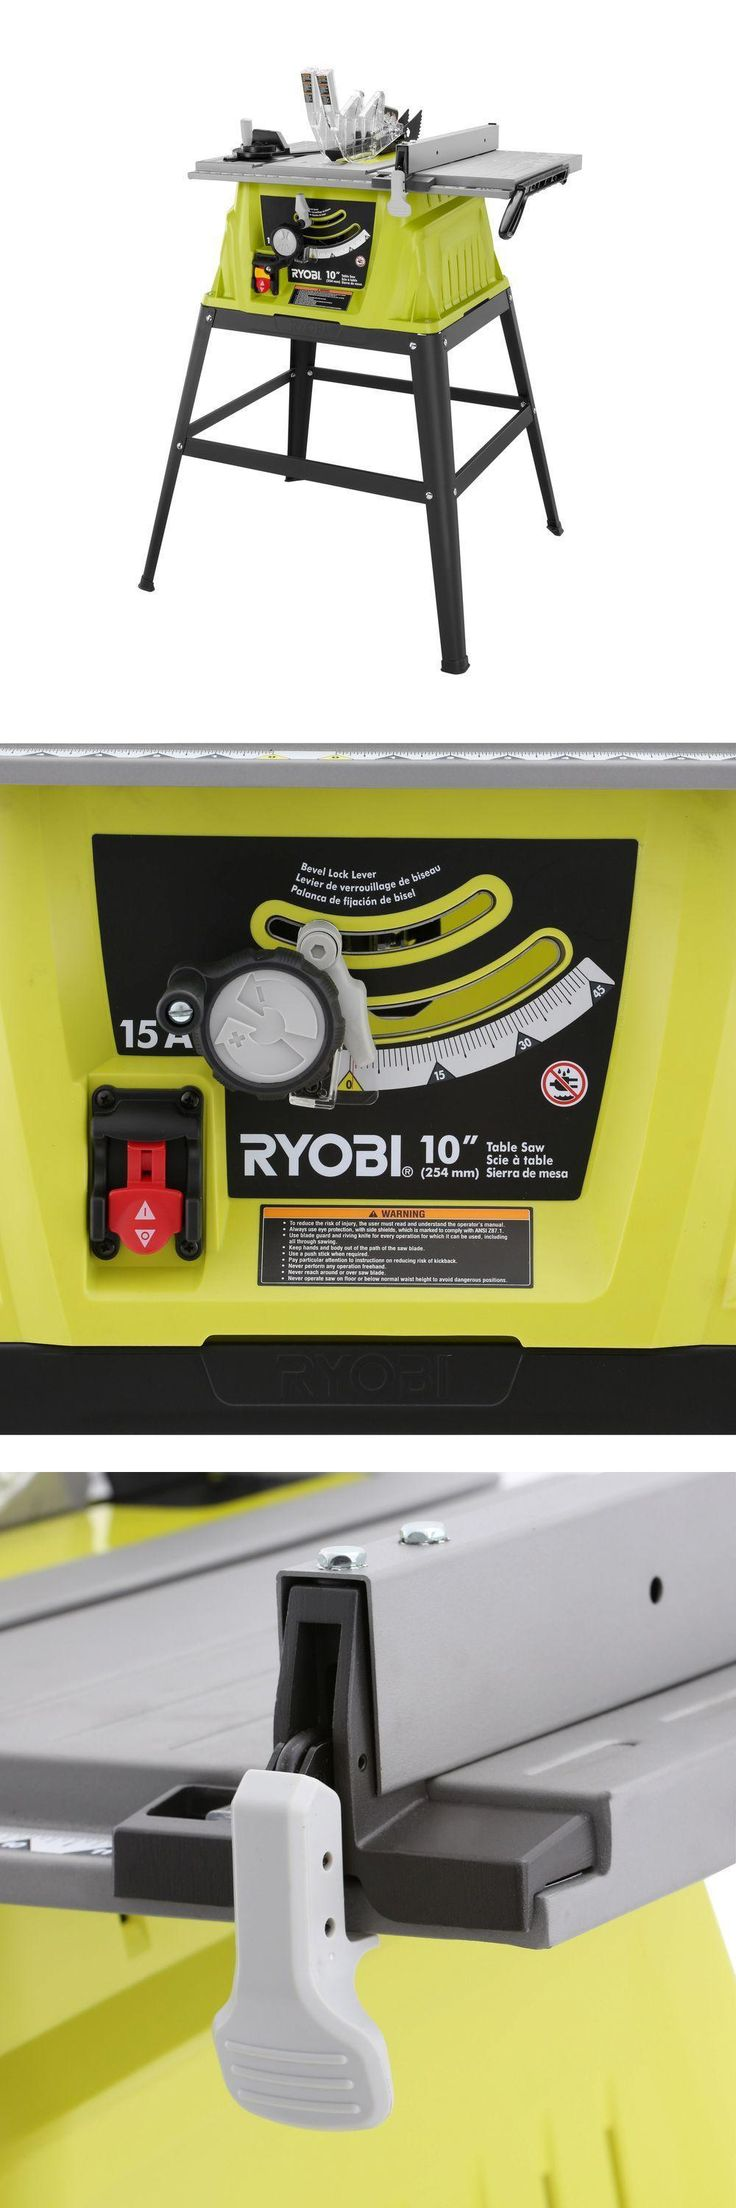 Table Saws 122835: Ryobi 15 Amp 10 In. Table Saw With Steel Stand Rts10g Brand New -> BUY IT NOW ONLY: $105 on eBay!